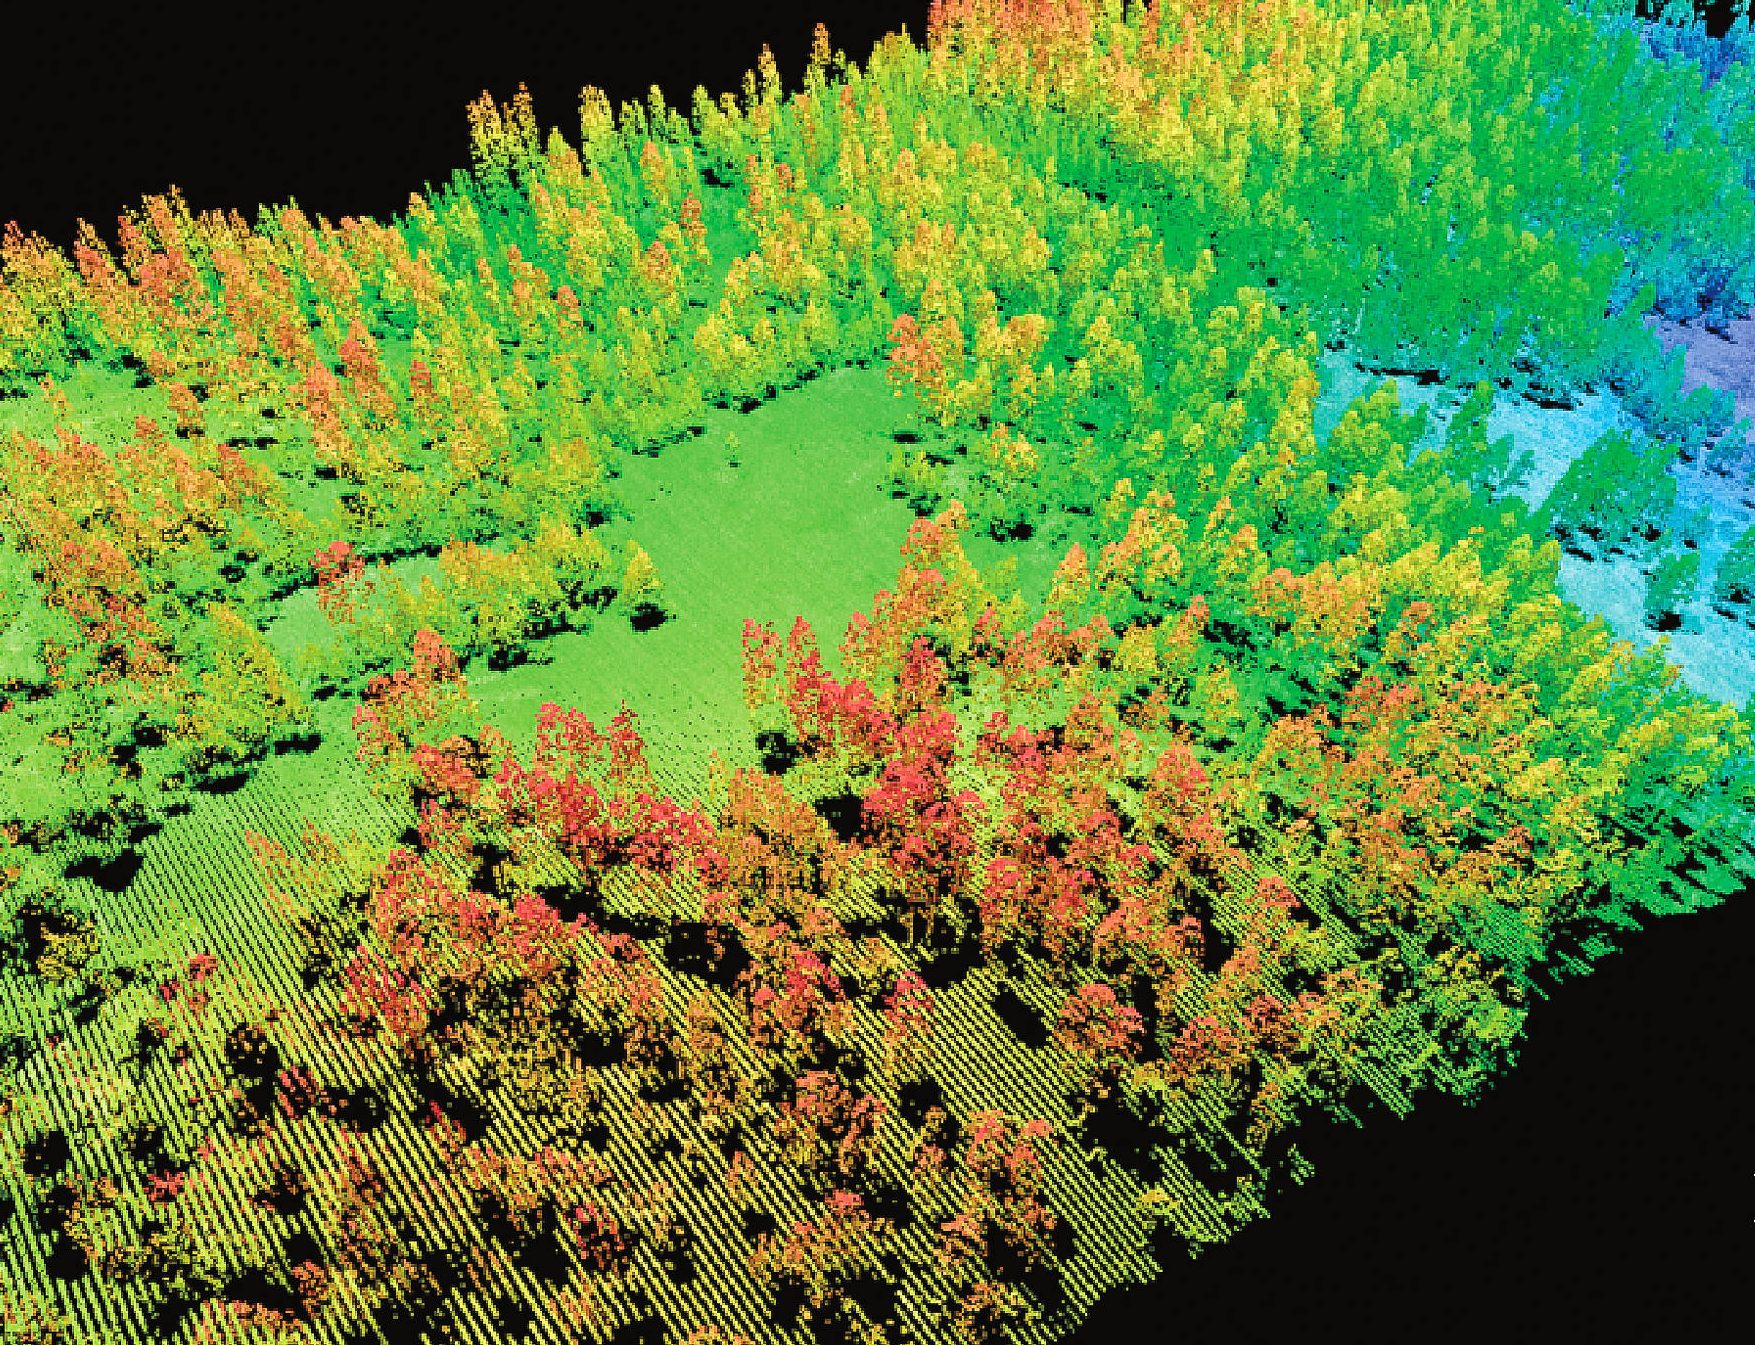 Collections of Lidar points show trees in the Sierra National Forest, where much of the research on remote sensing has occurred.